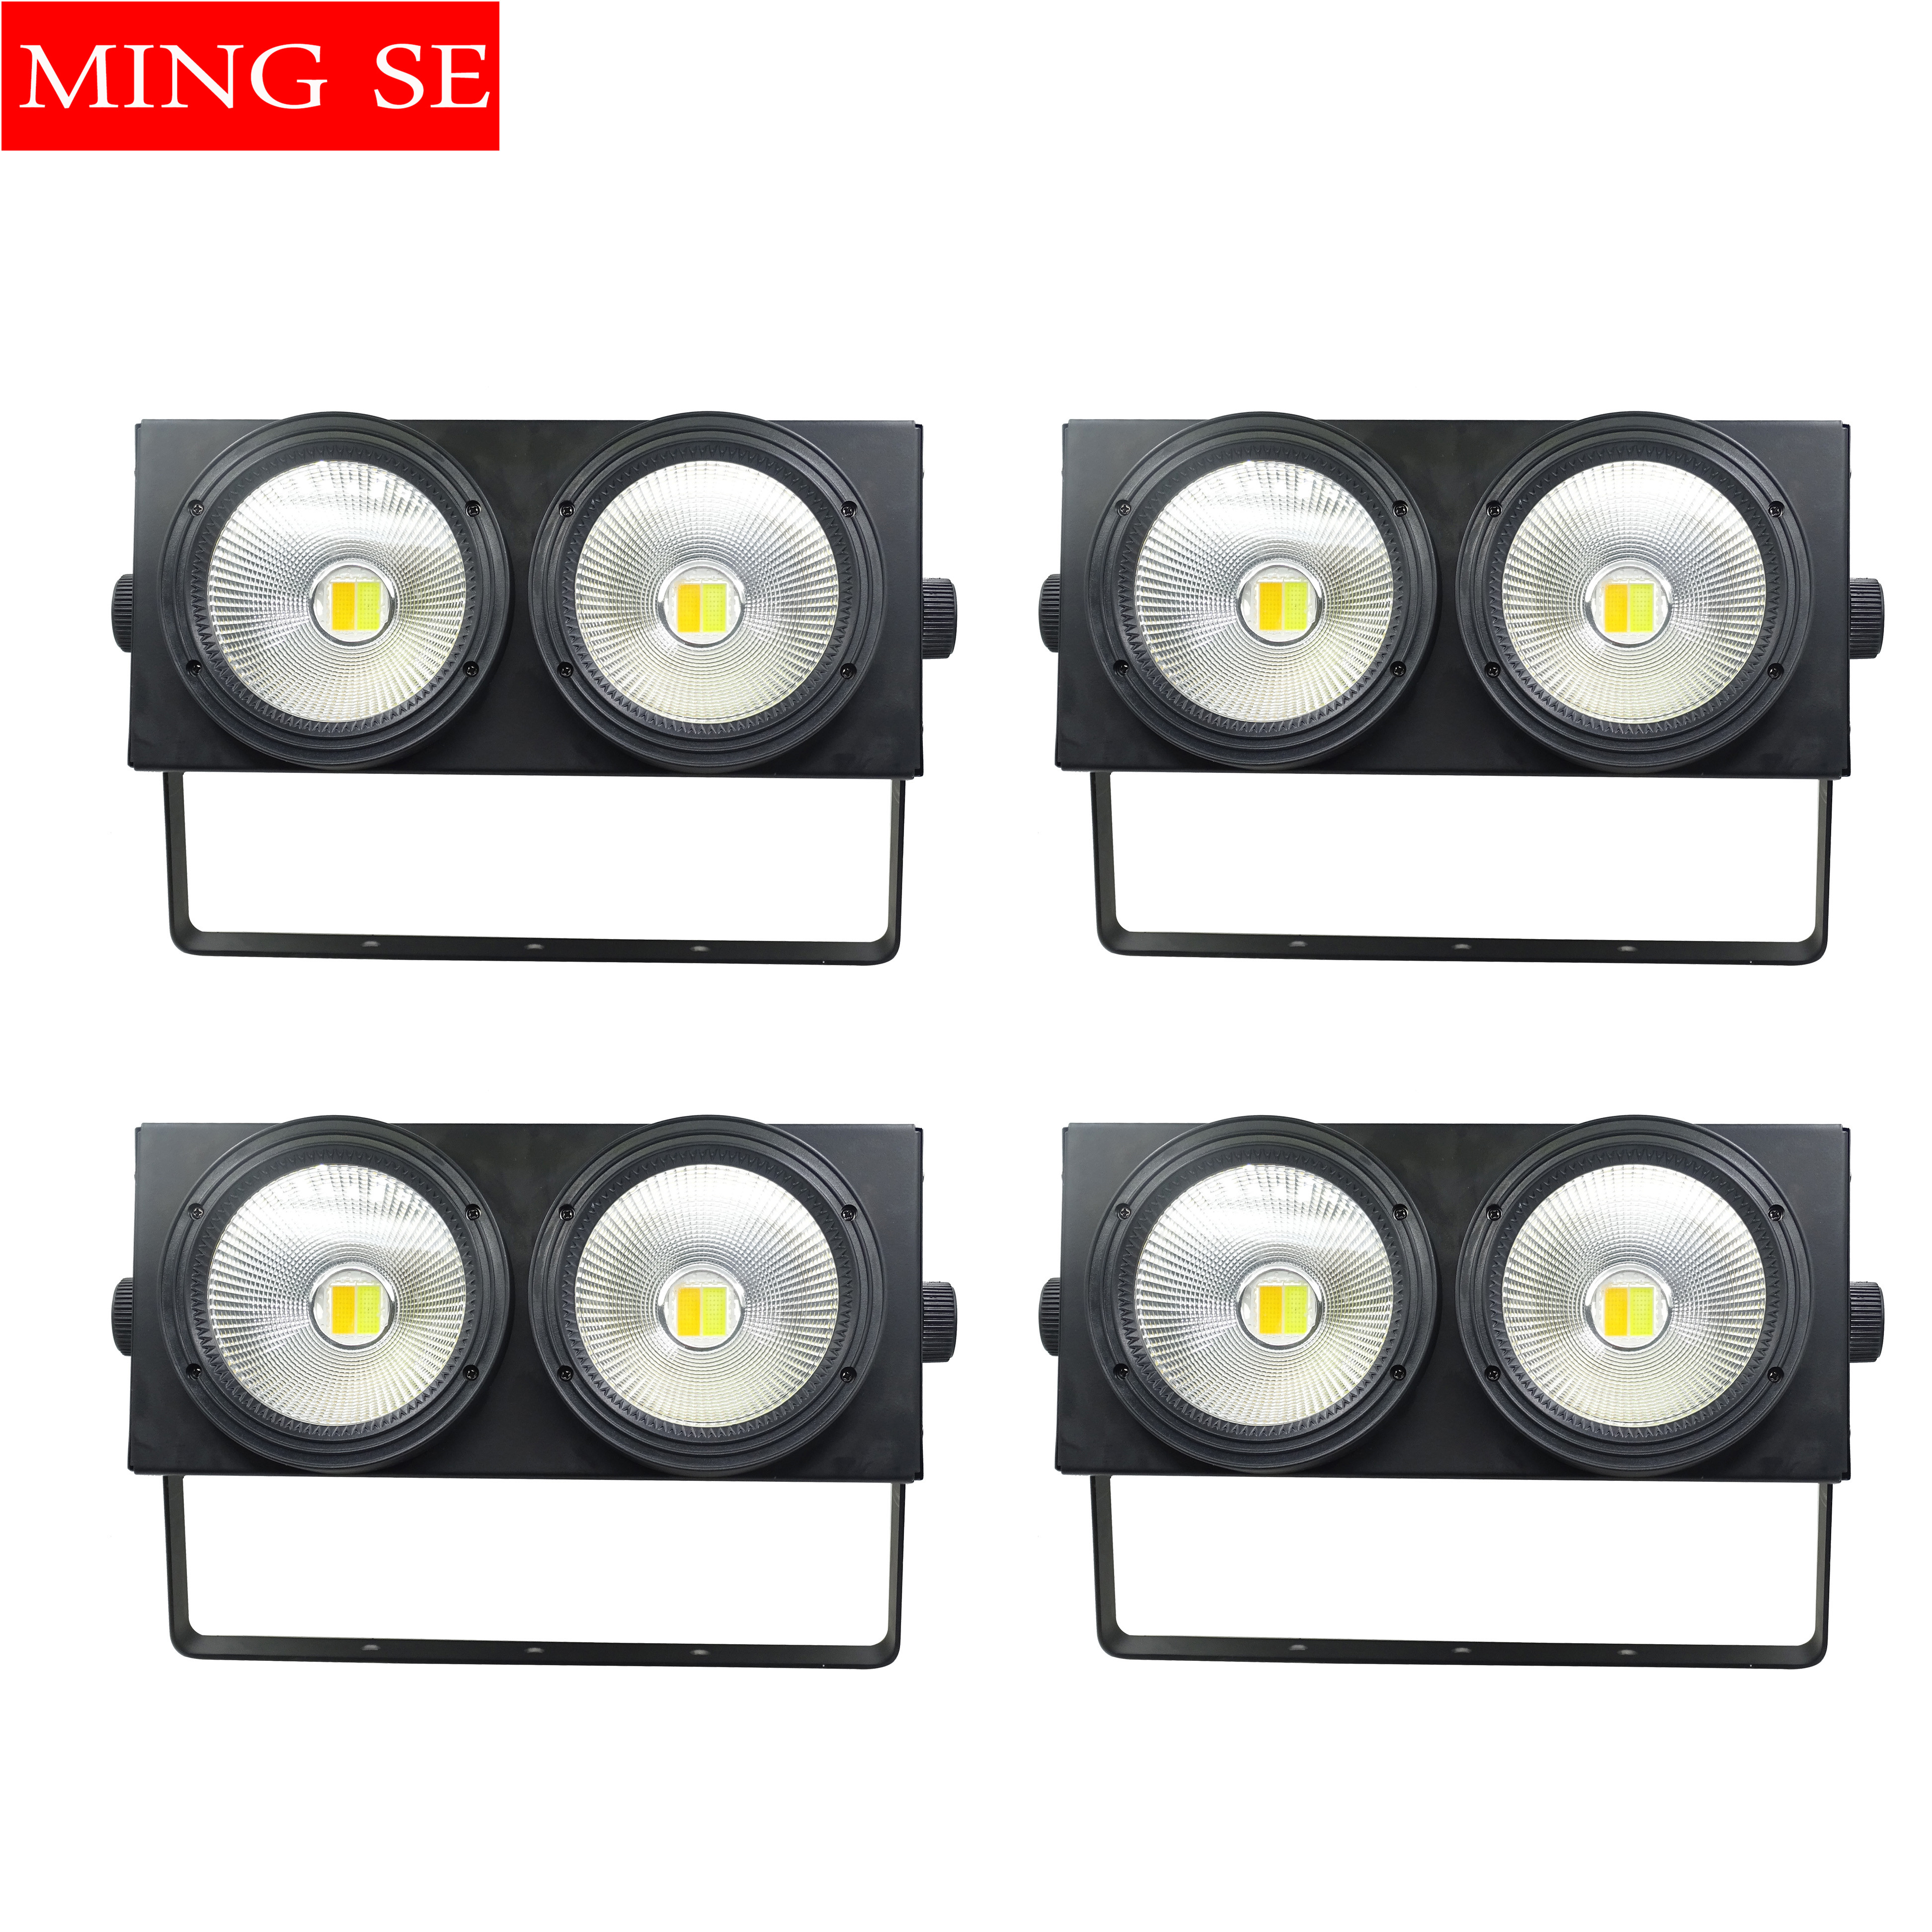 4pcs/lots 2 Eyes LED COB Blinder Light Cold White/Warm White 2in1 COB LEDs Control Optional Individually 2x100W Audience Light